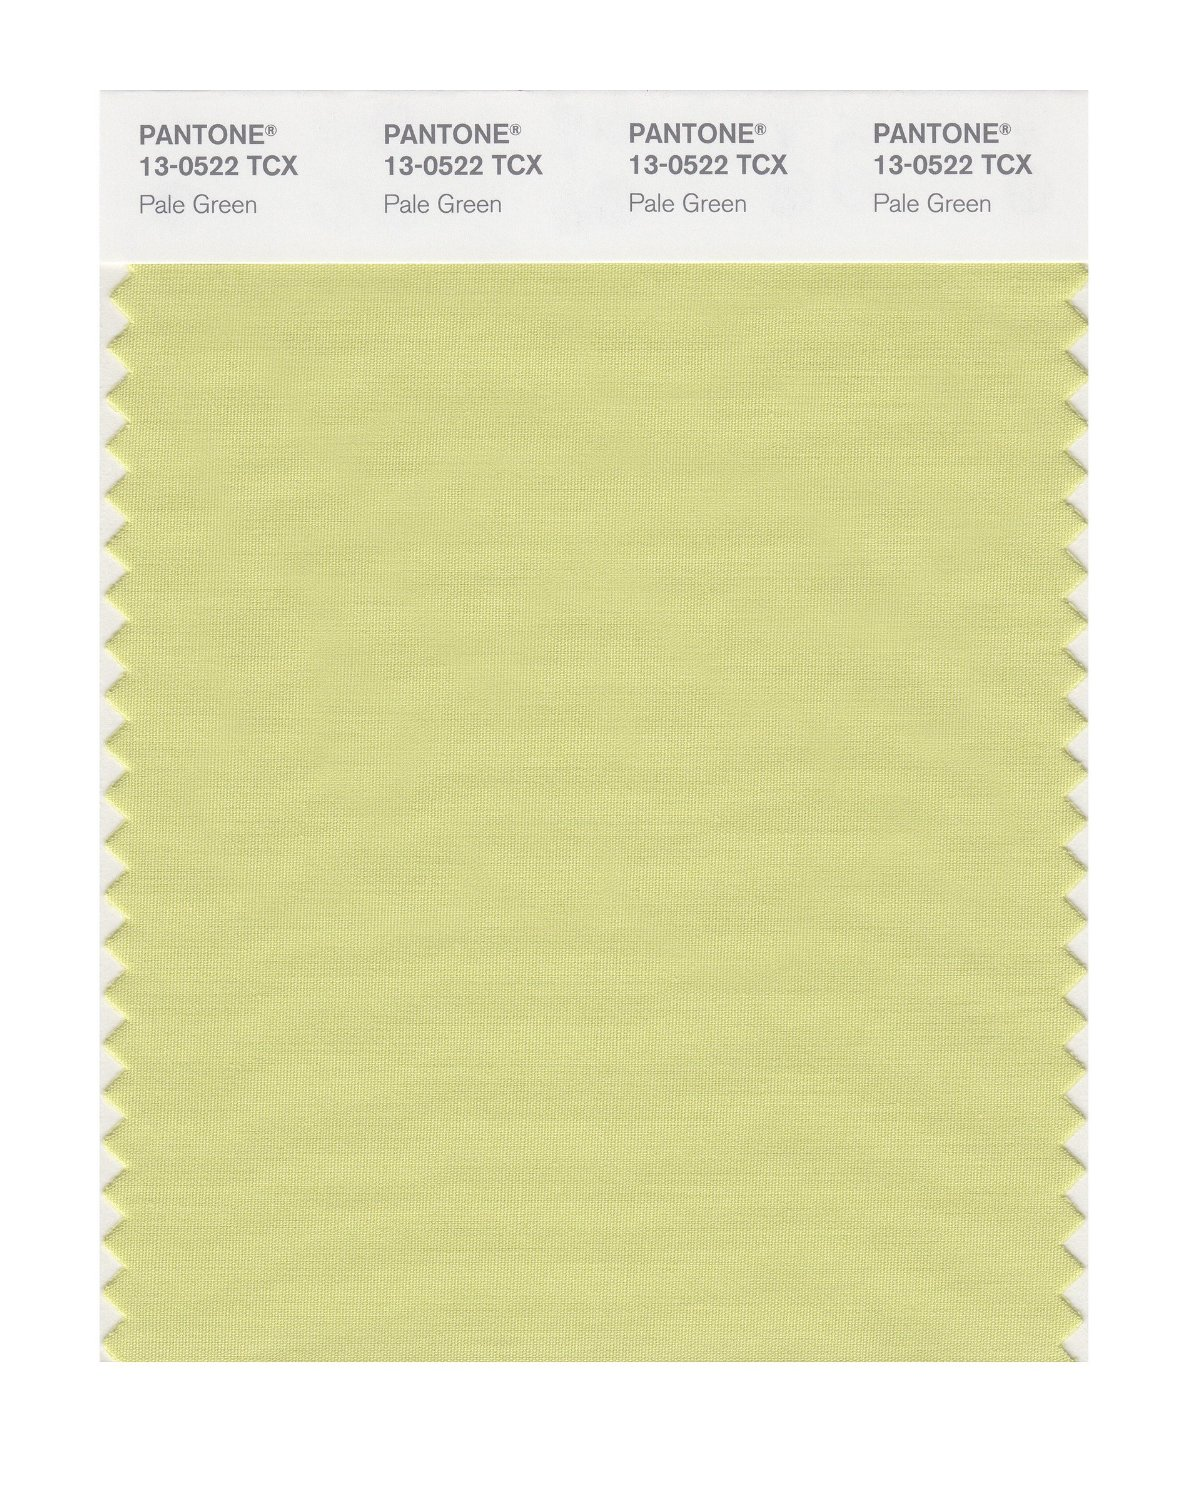 Pantone Smart Swatch 13-0522 Pale Green